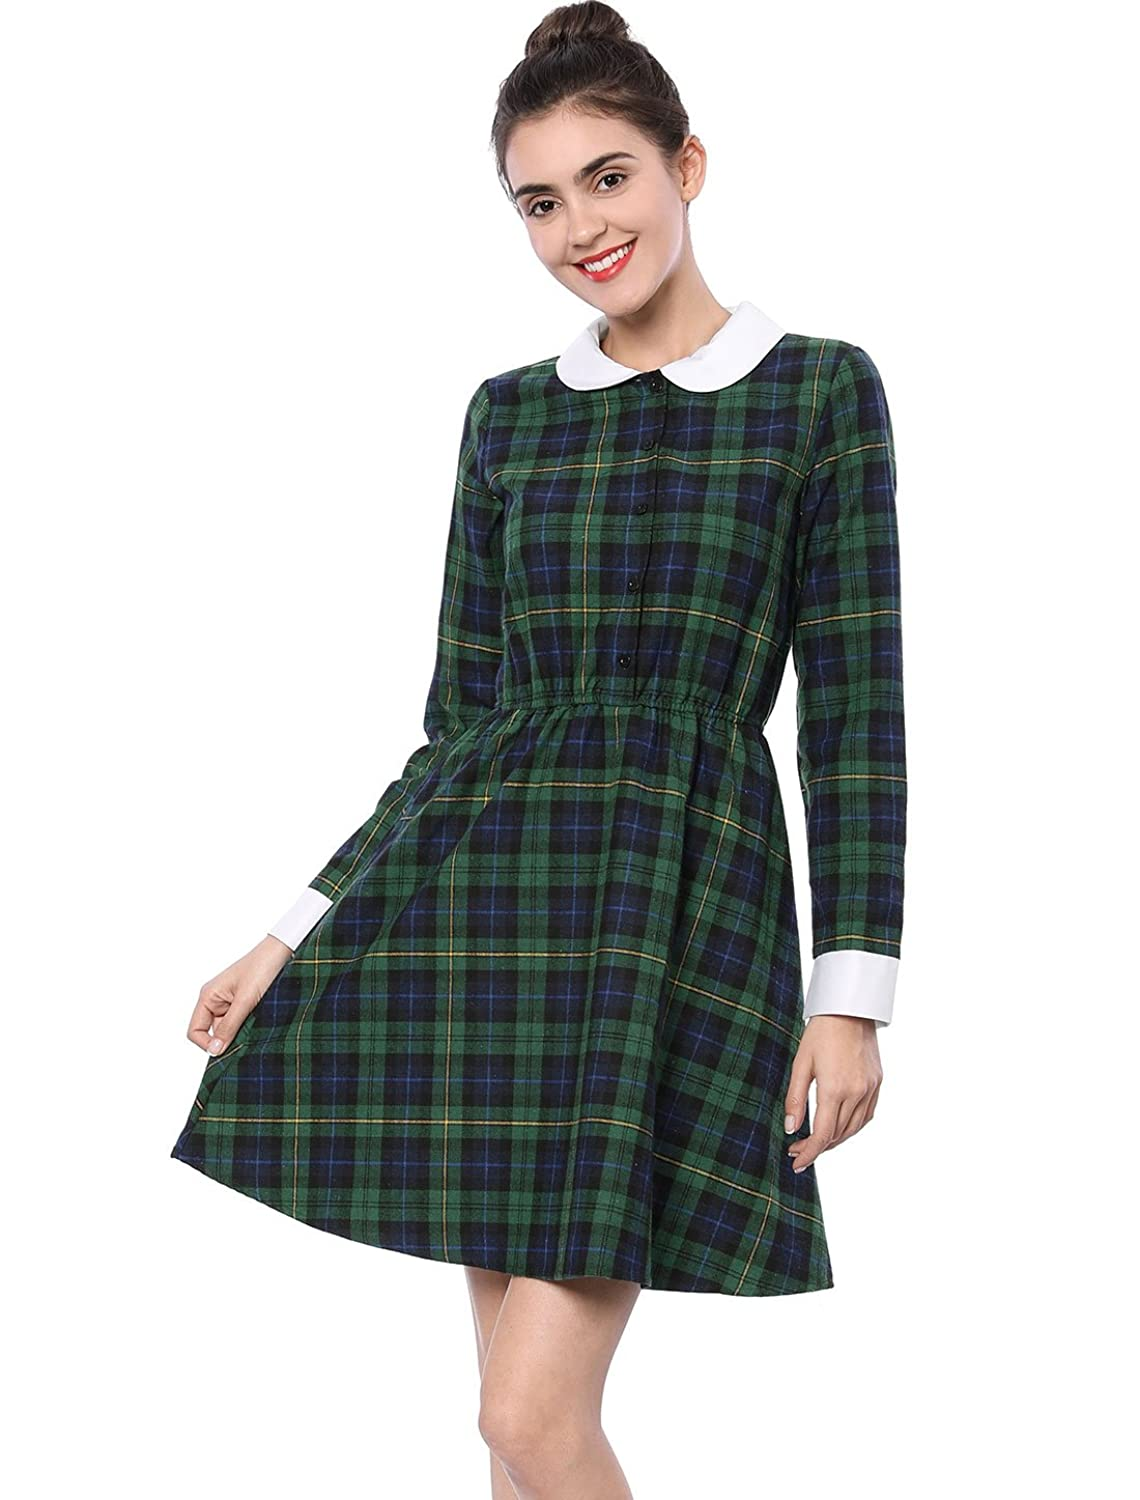 Allegra K Women's Contrast Peter Pan Collar Plaid Check A Line Dress:  Amazon.co.uk: Clothing